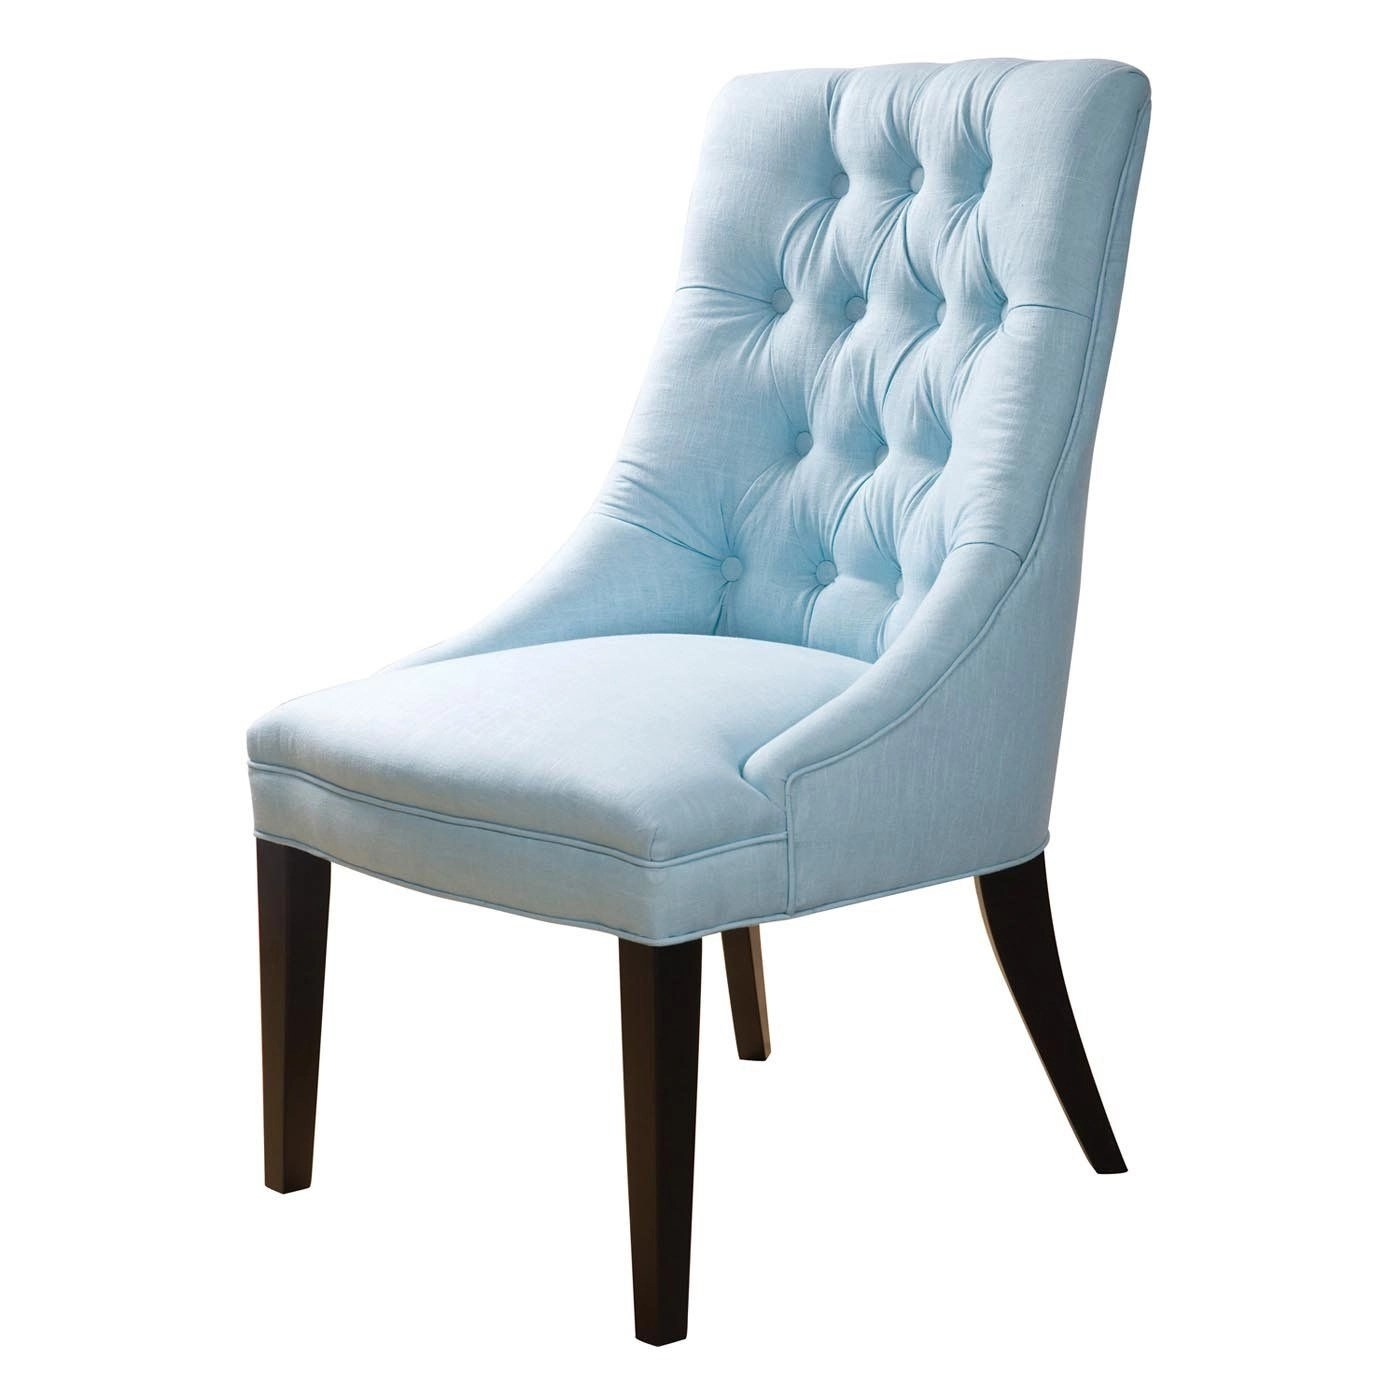 chair with light best racing weight folding chairs ideas on foter sandy wilson cashmir accent blue